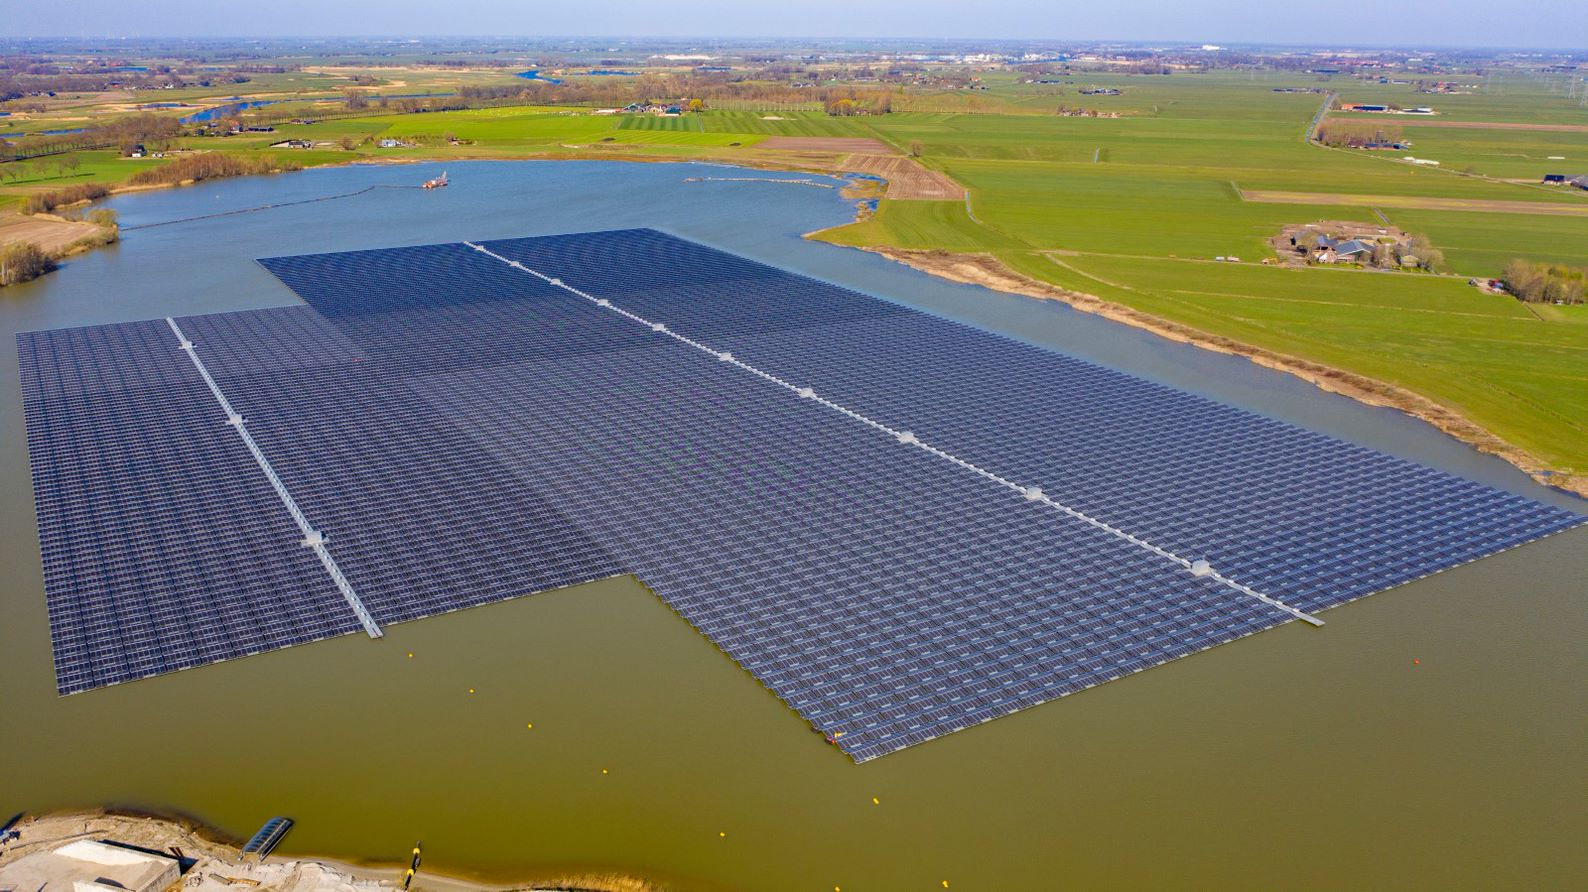 The 27.4MWp floating array is constructed on a sandpit lake. Image: BayWa r.e.